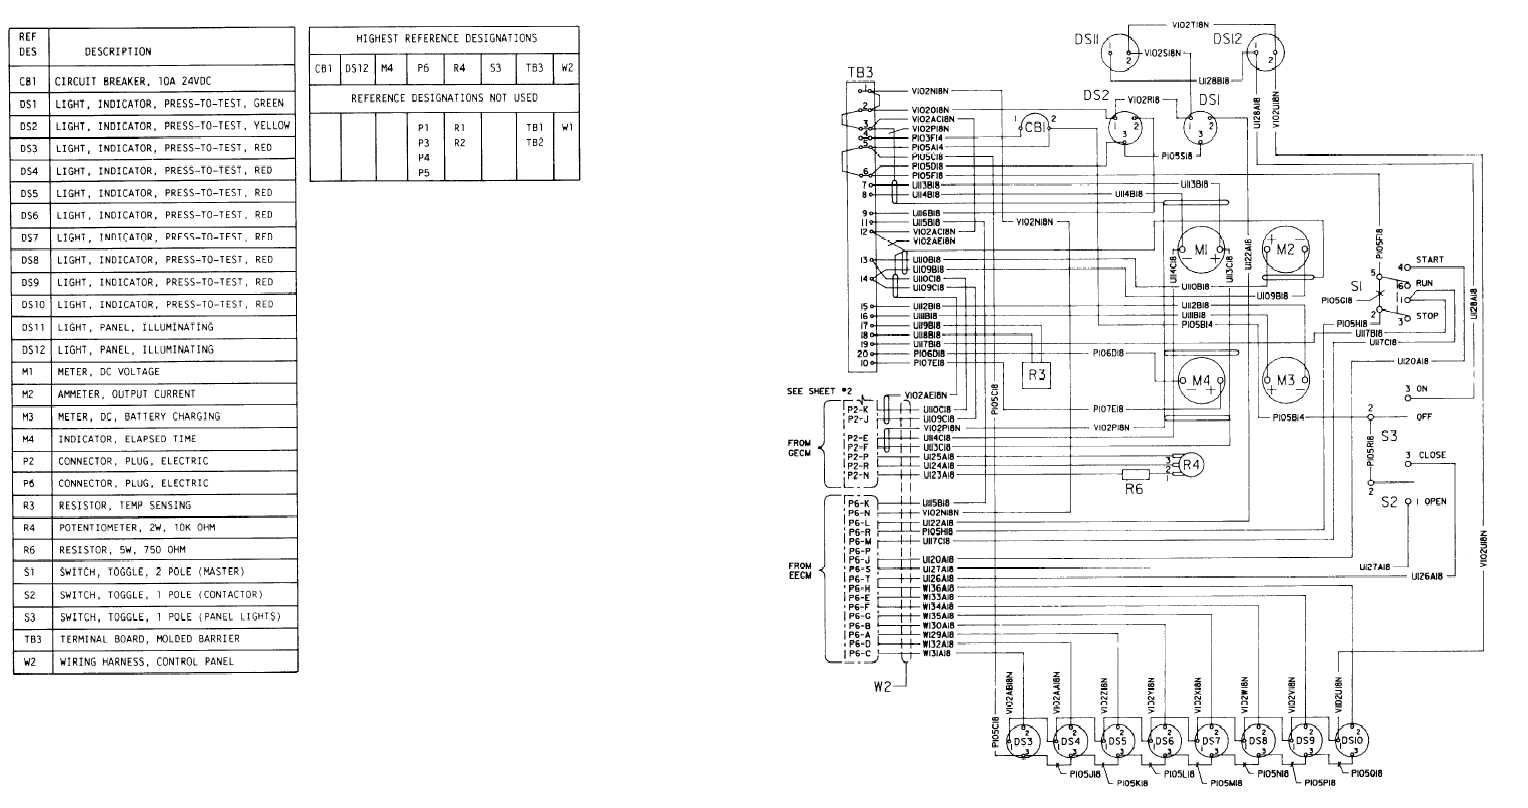 Get Control Panel Wiring Diagram Pdf Sample